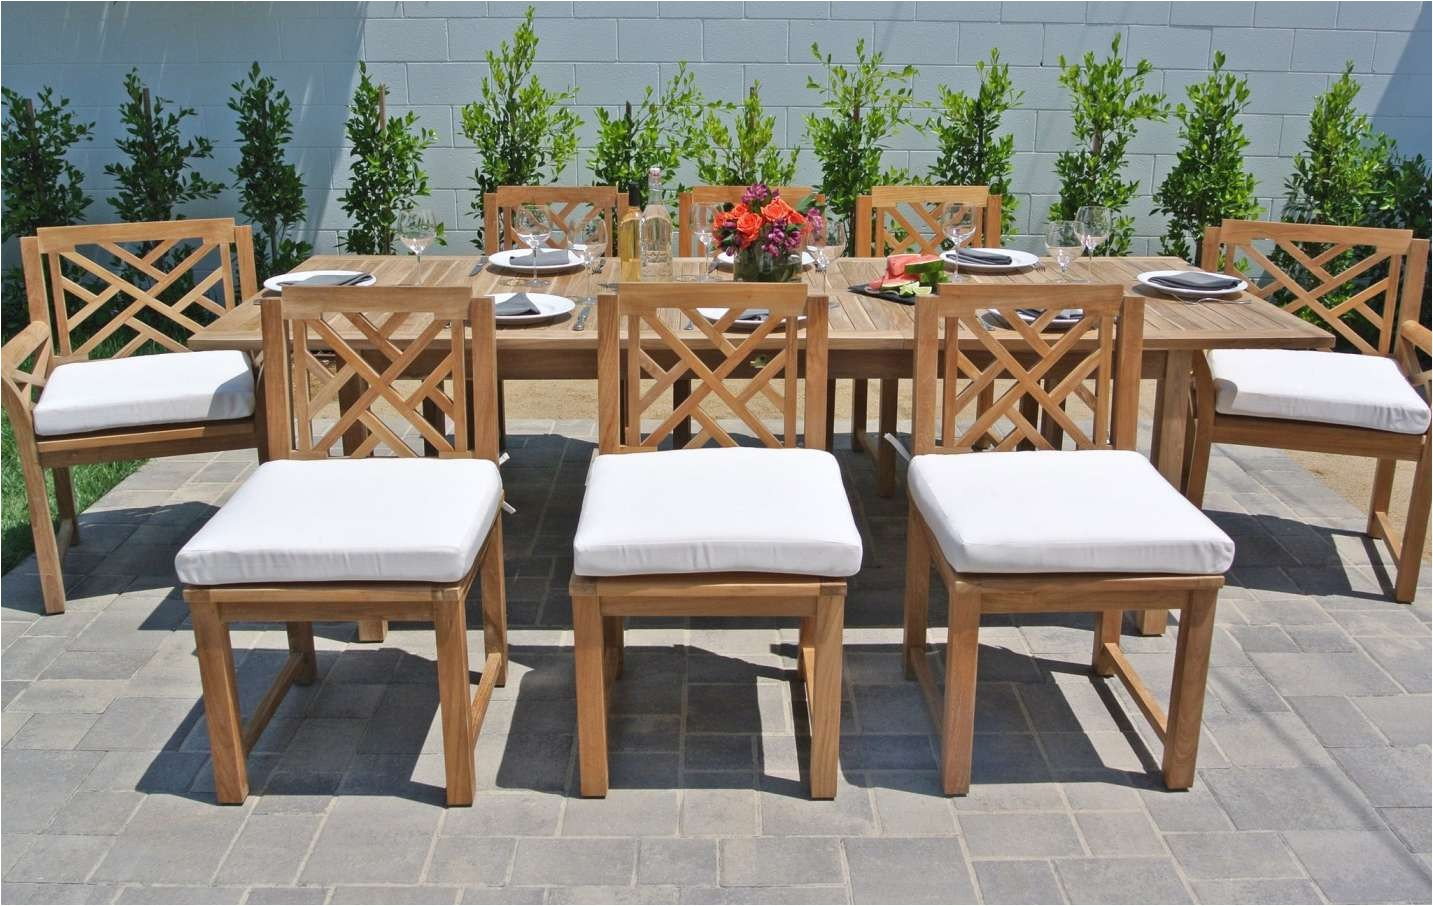 40 inspiration about king soopers patio furniture